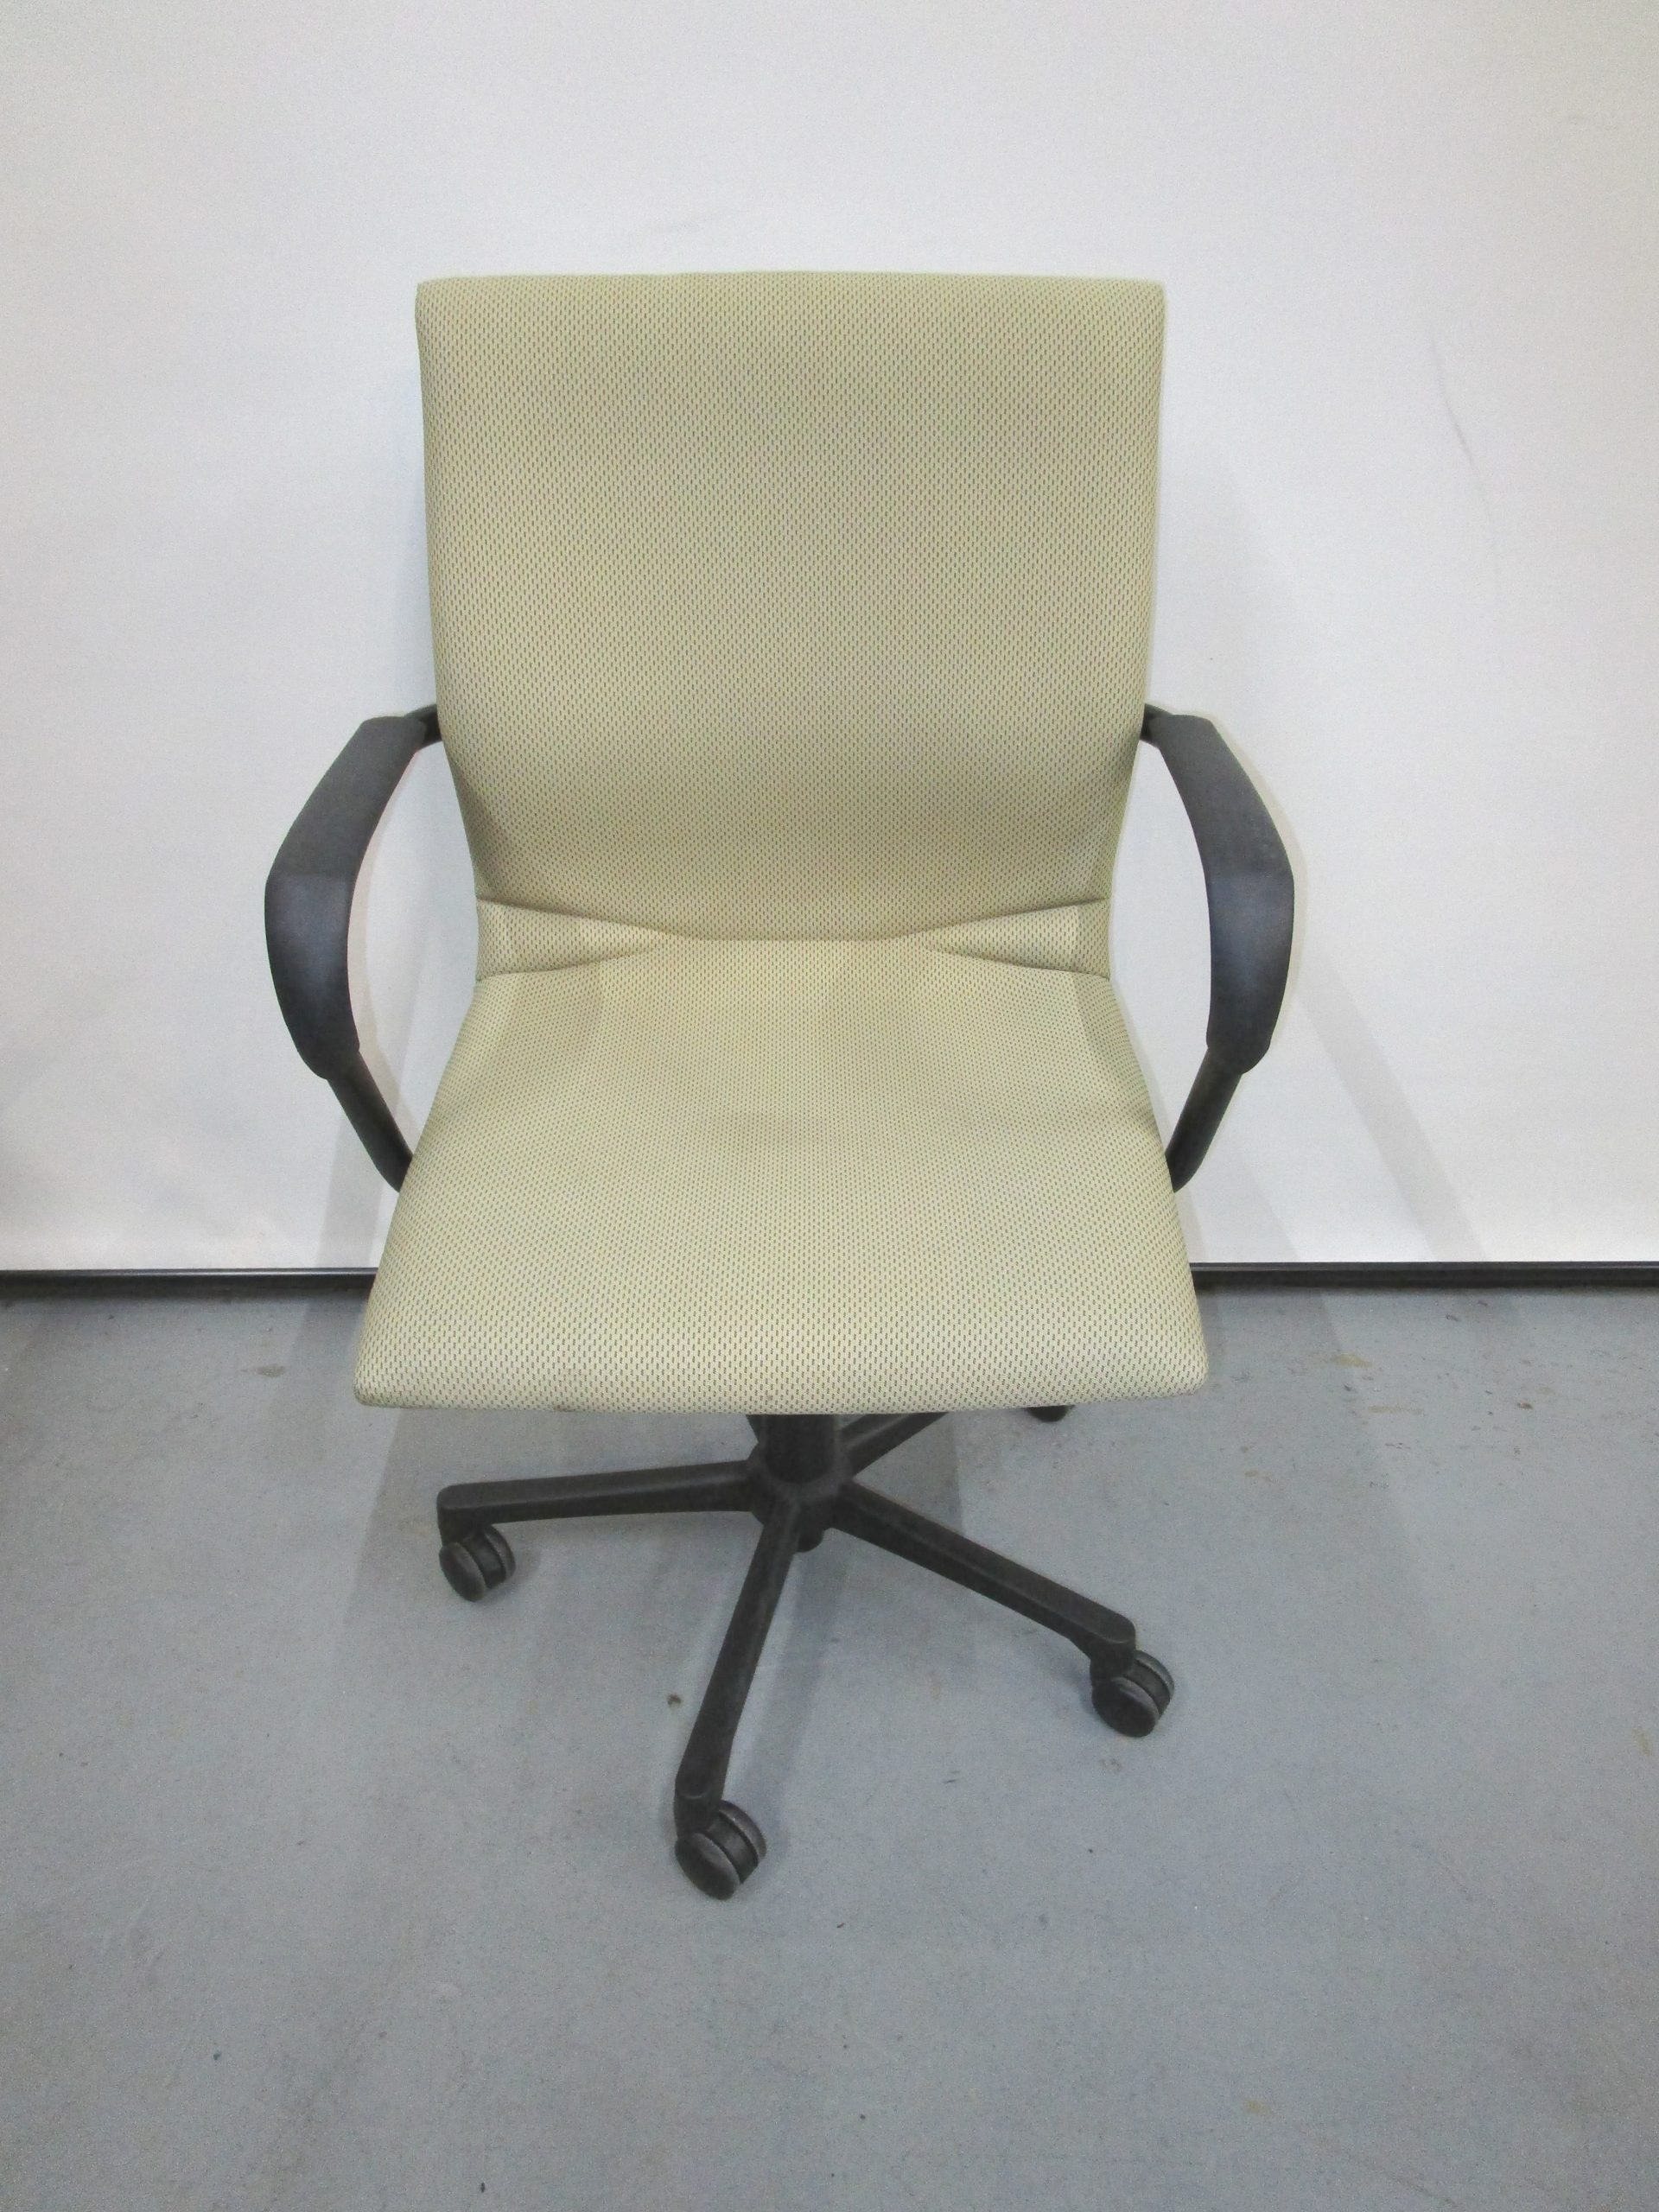 Steelcase Protégé Chair-tan Fabric